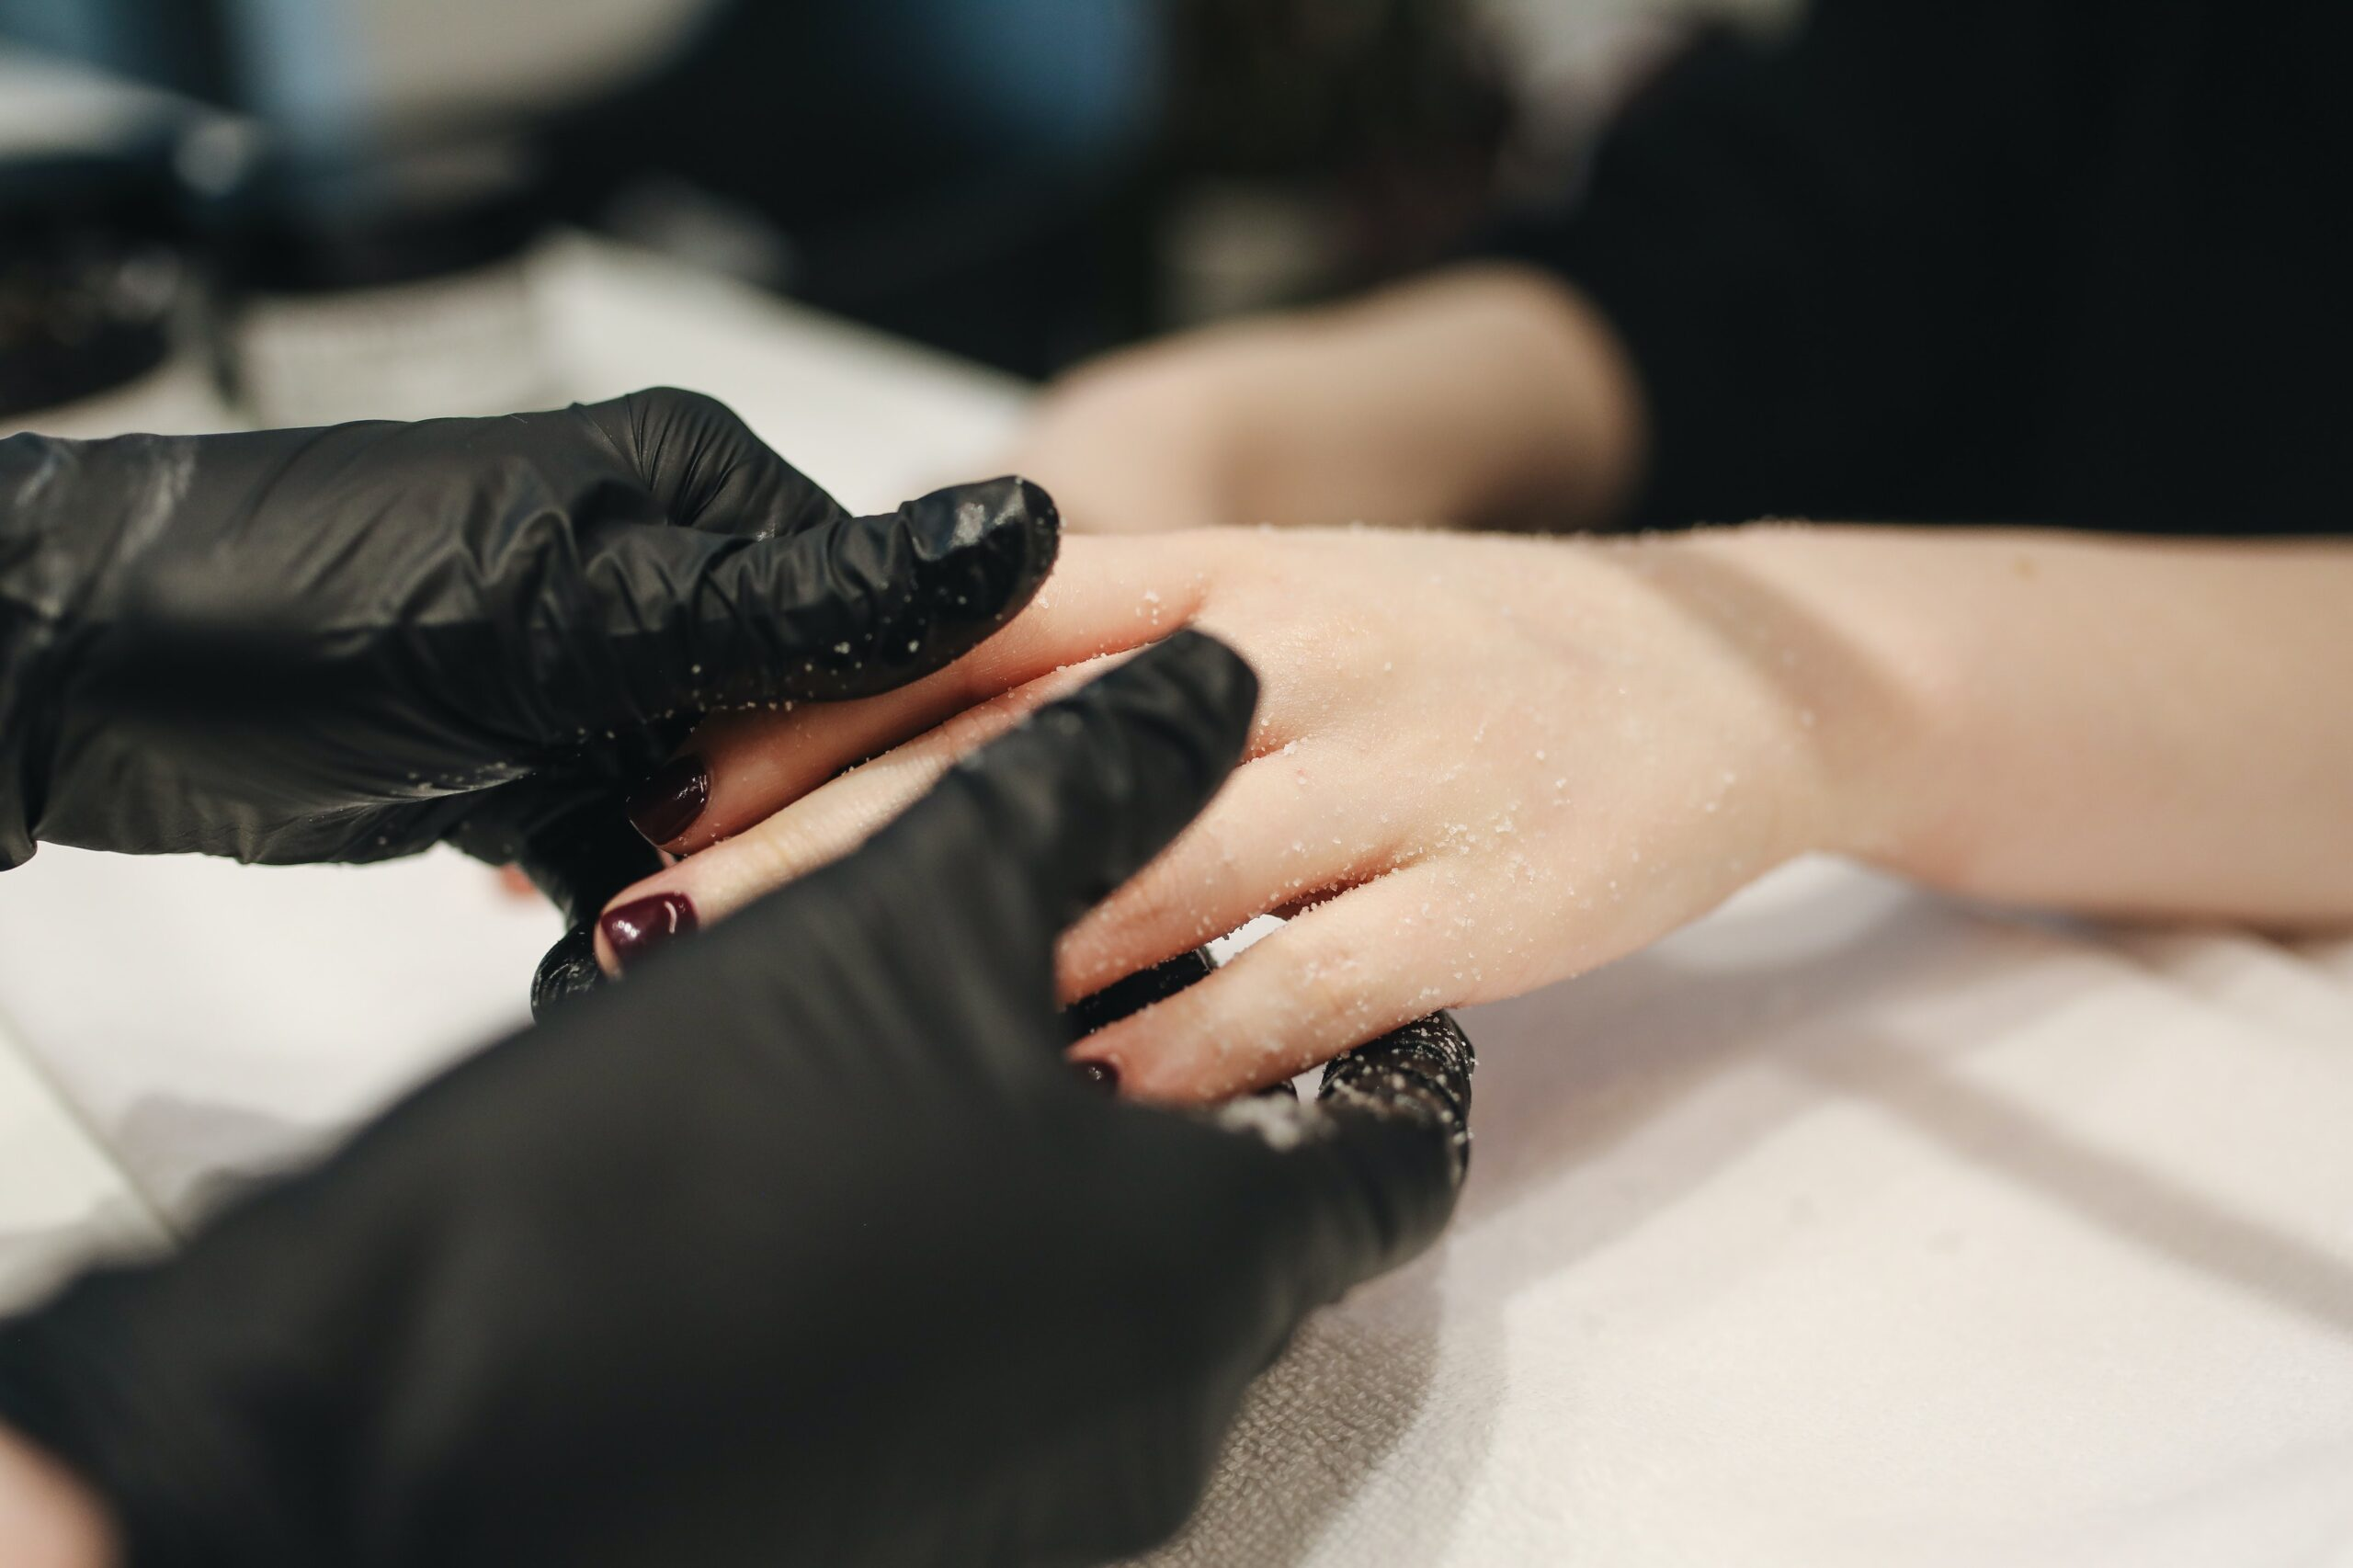 nail artists hands holding a womans hands to paint her nails